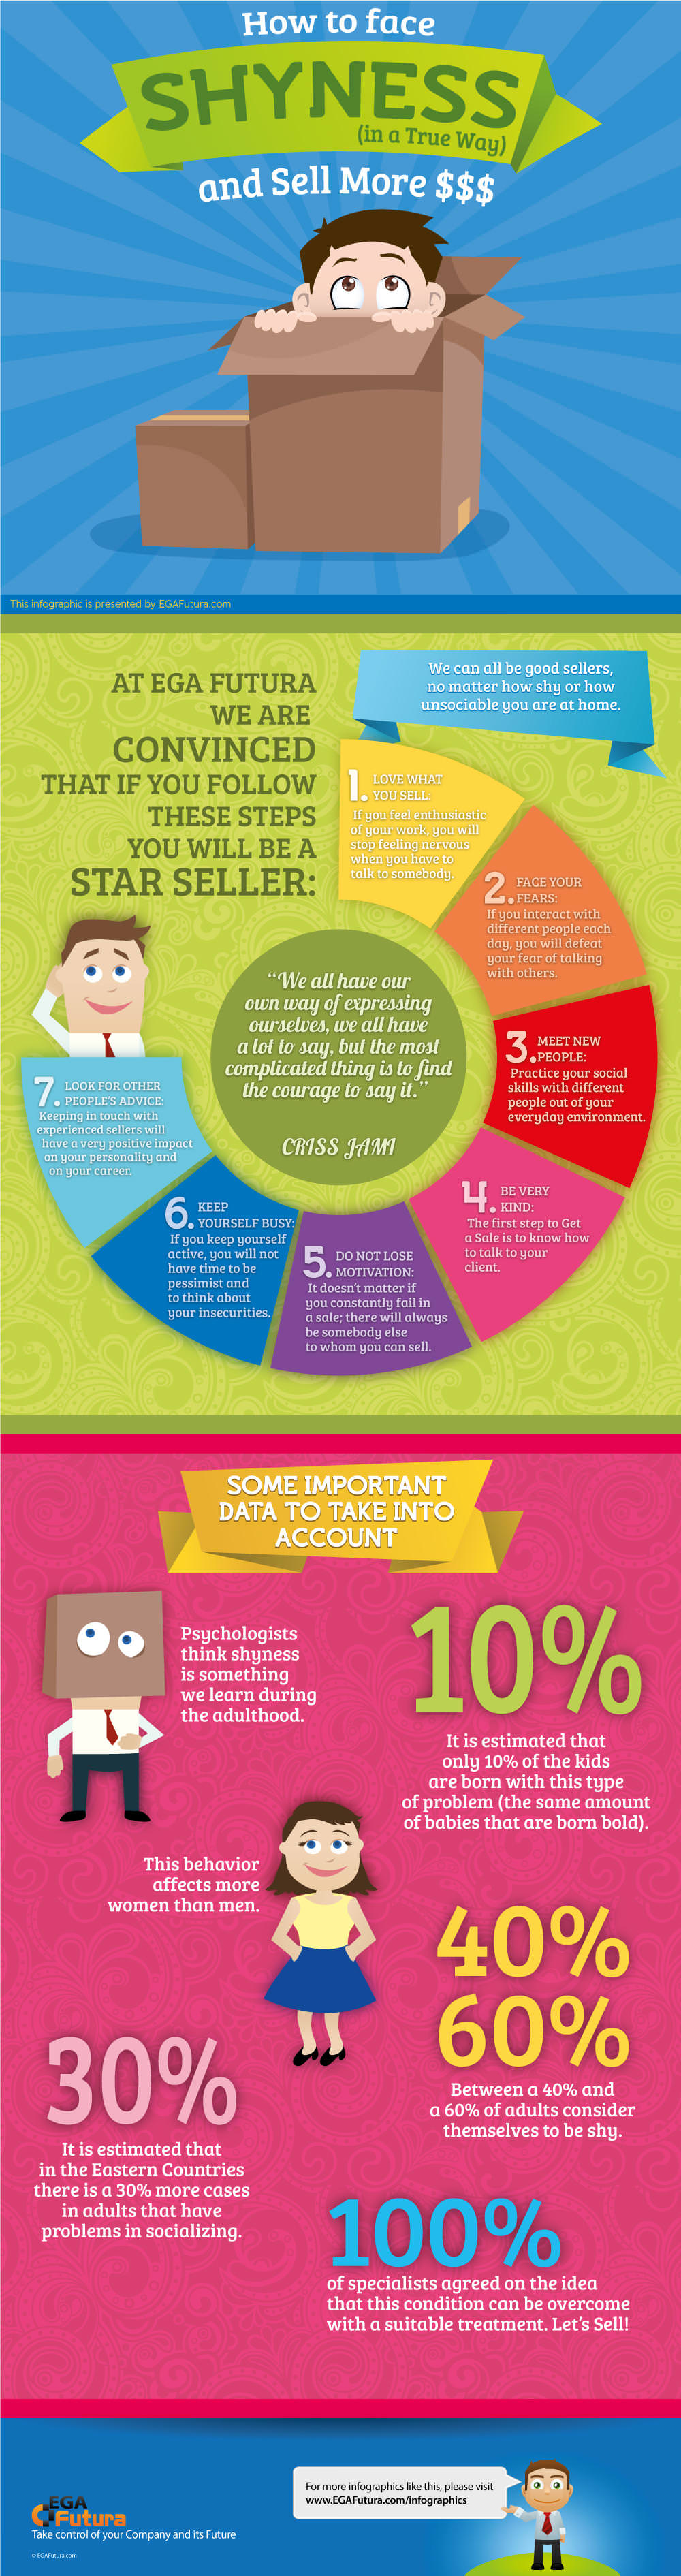 Infographic: How to face Shyness (in a True Way) and Sell More $$$